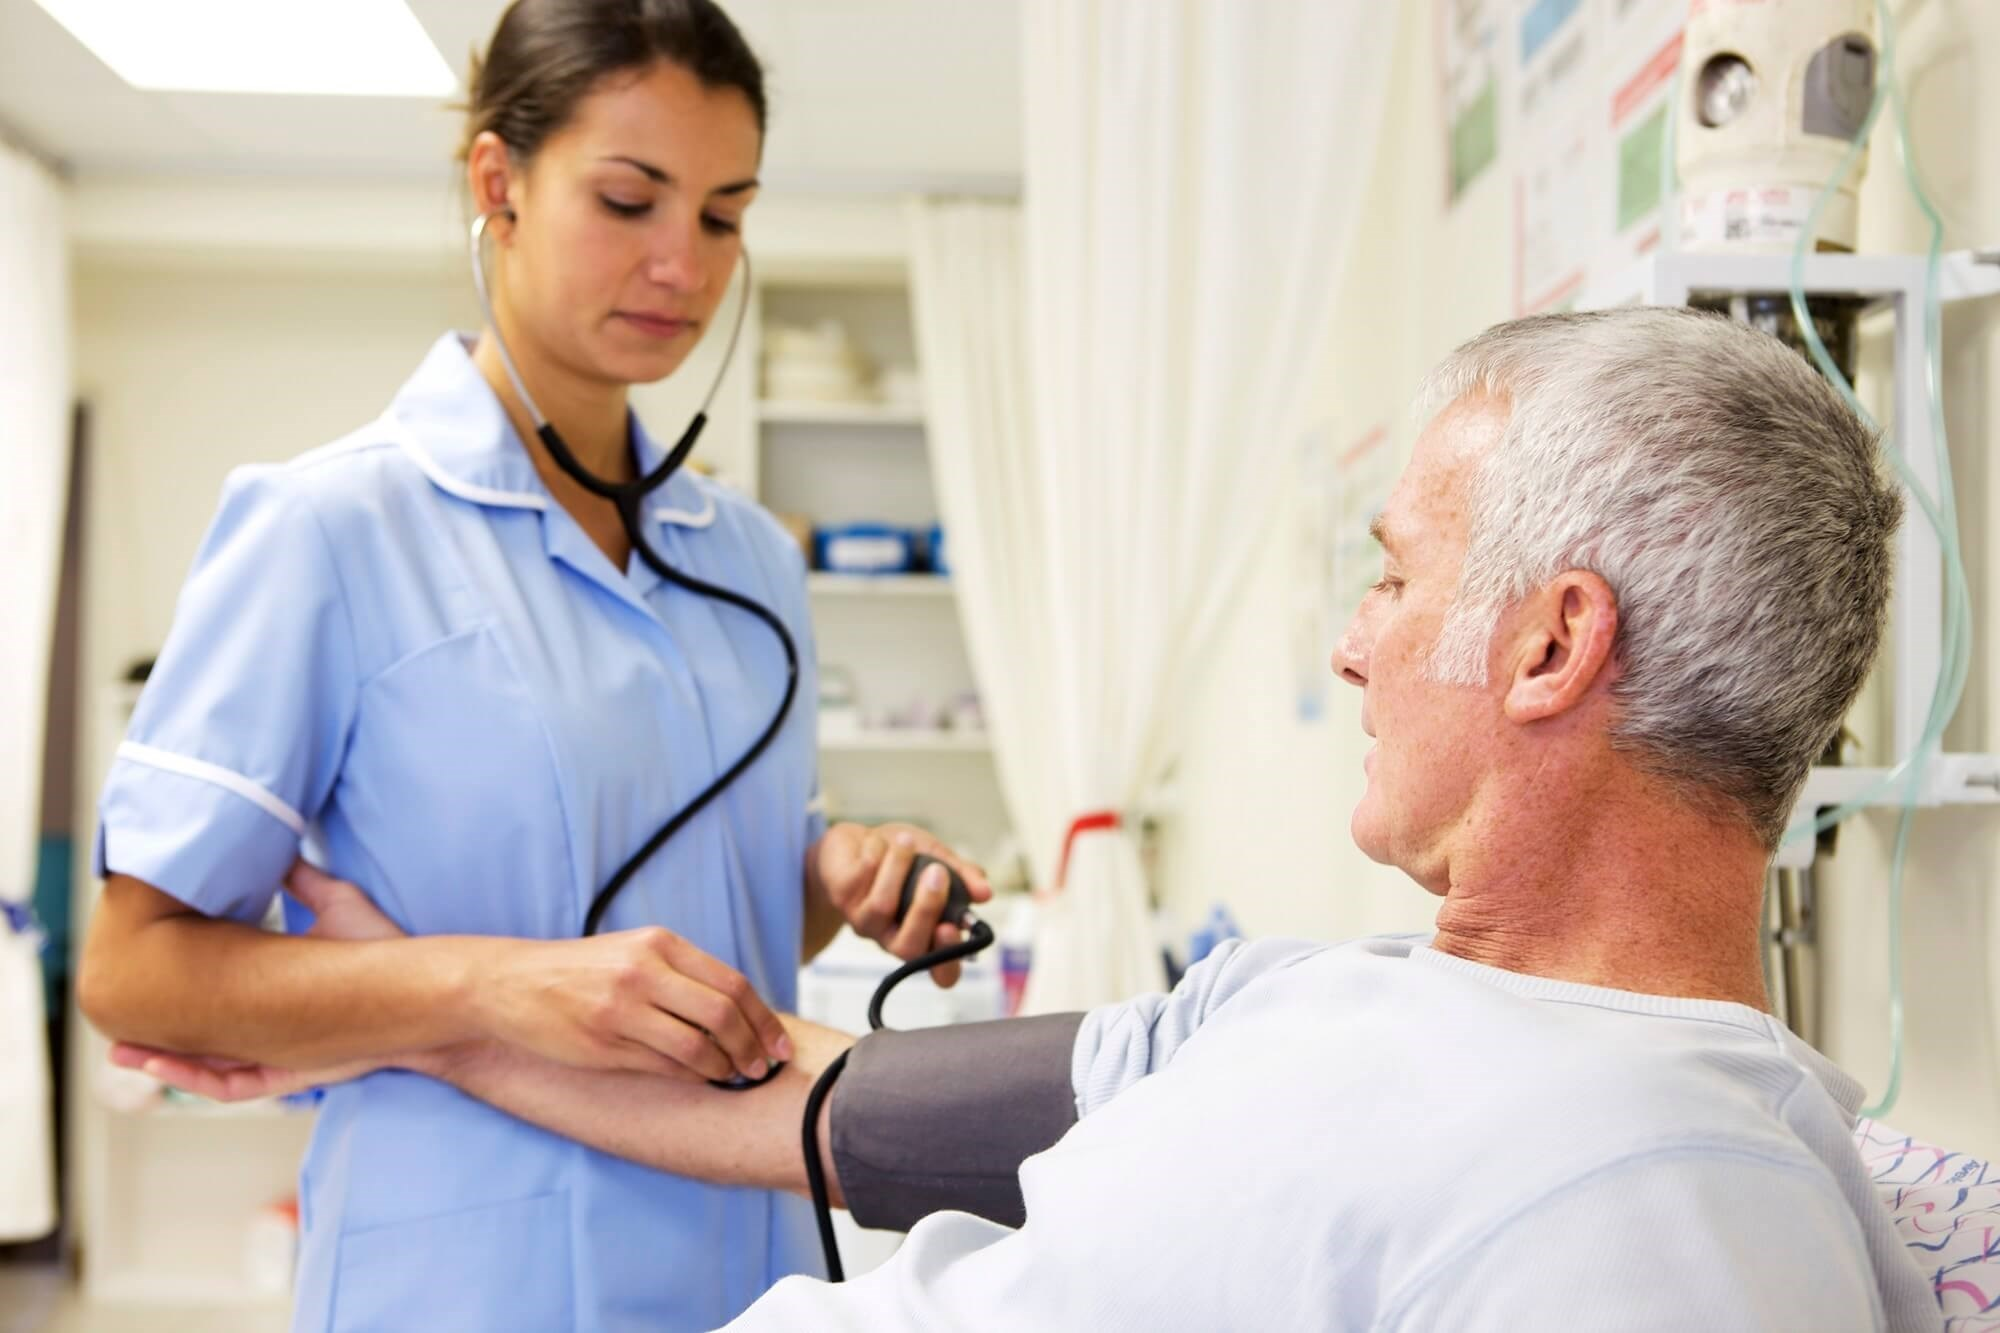 A culturally tailored, skills-based educational intervention did not reduce systolic blood pressure at one year after stroke/transient ischemic attack.